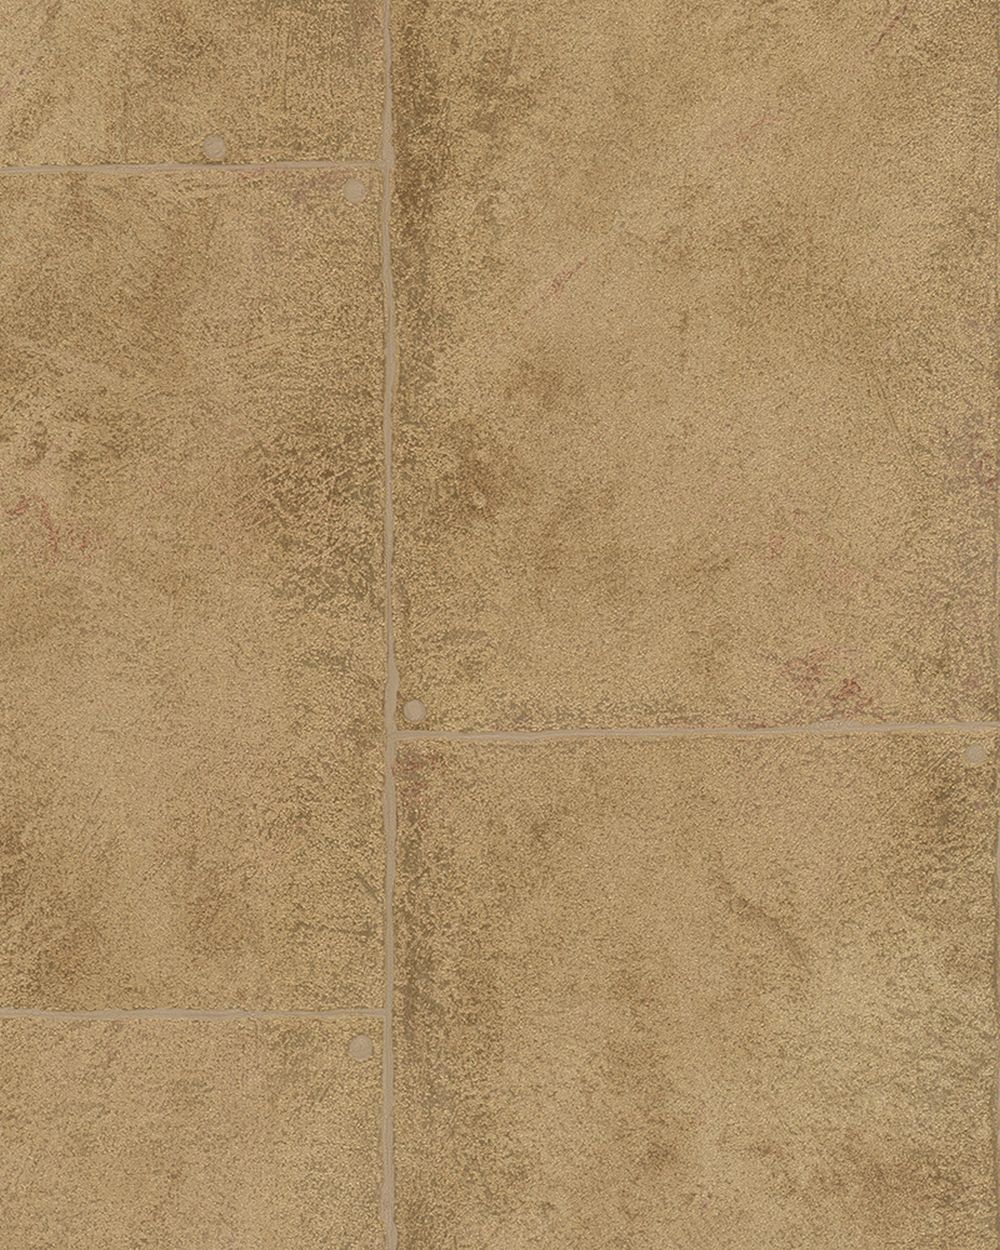 Tapete vlies beton optik gold beige metallic marburg 59333 for Tapete beige